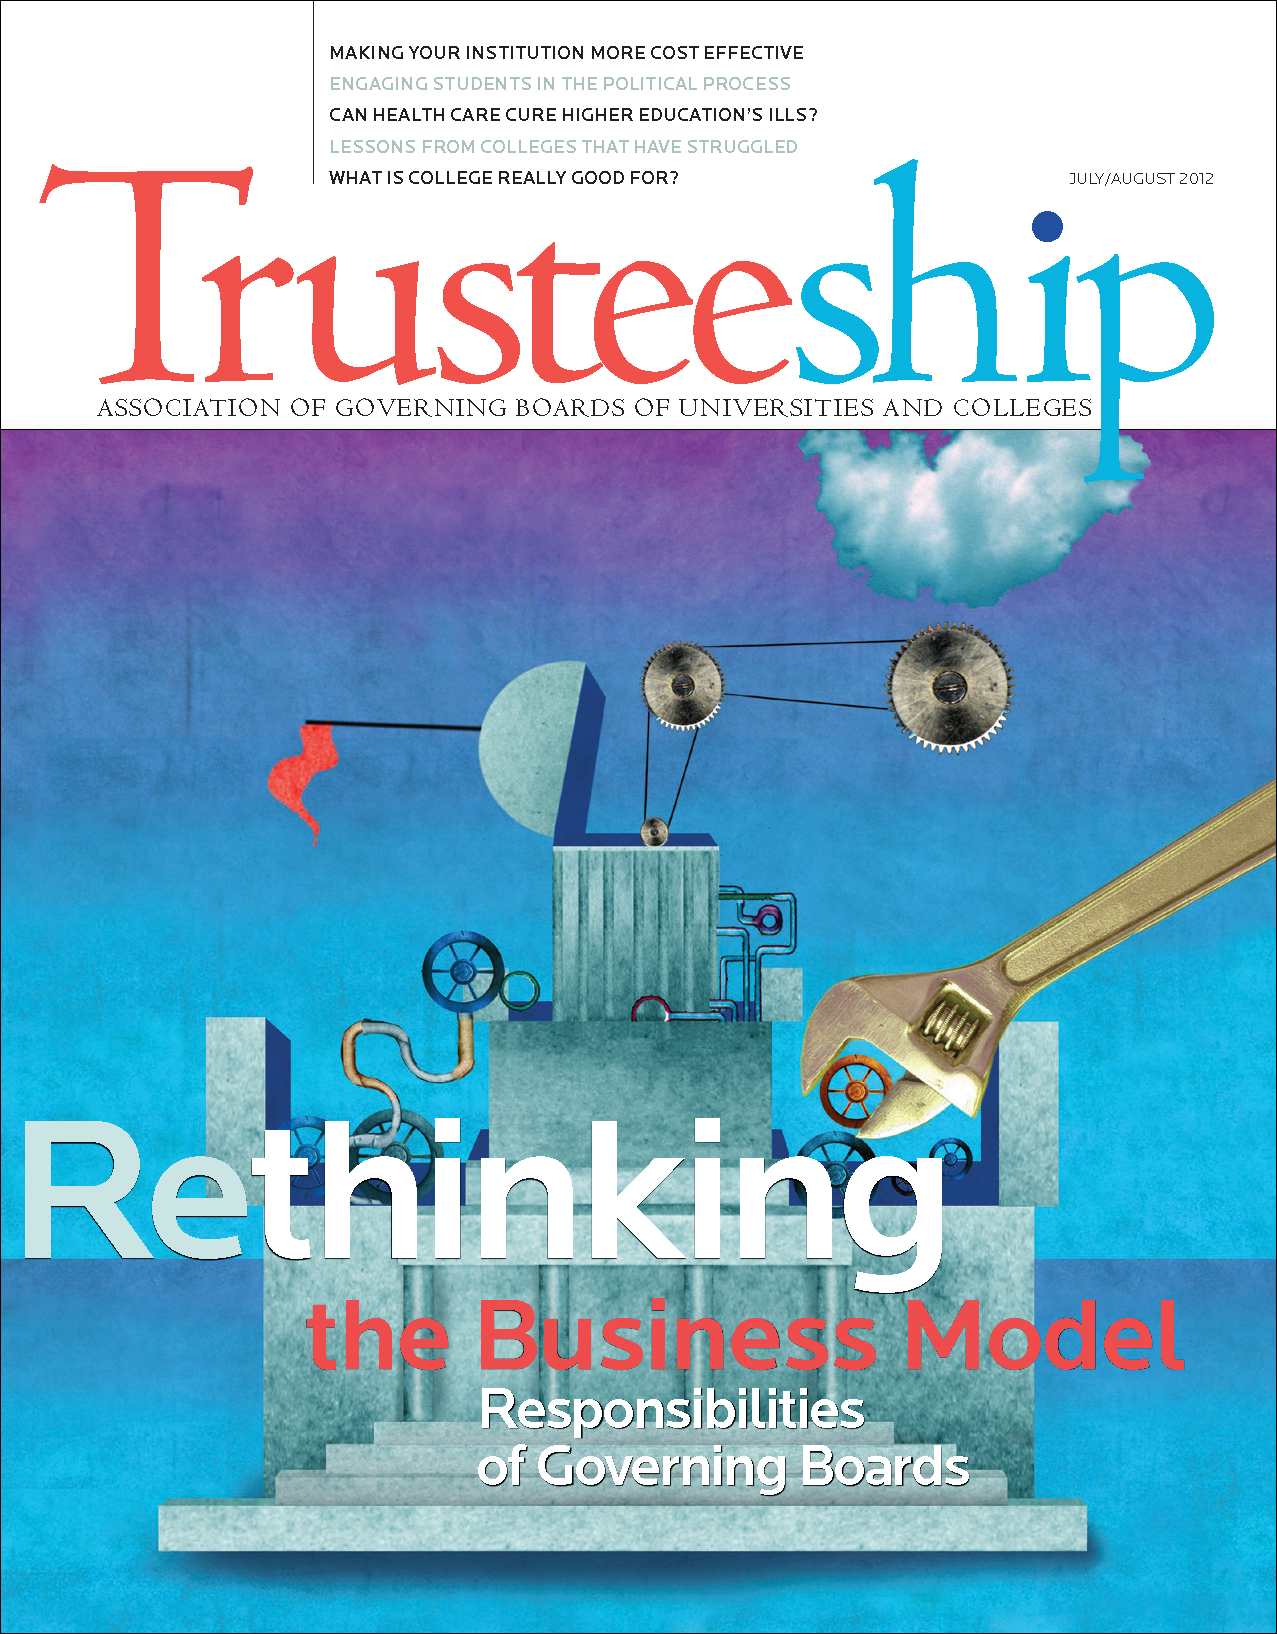 Rethinking the Business Model: Responsibilities of Governing Boards, July/August 2012